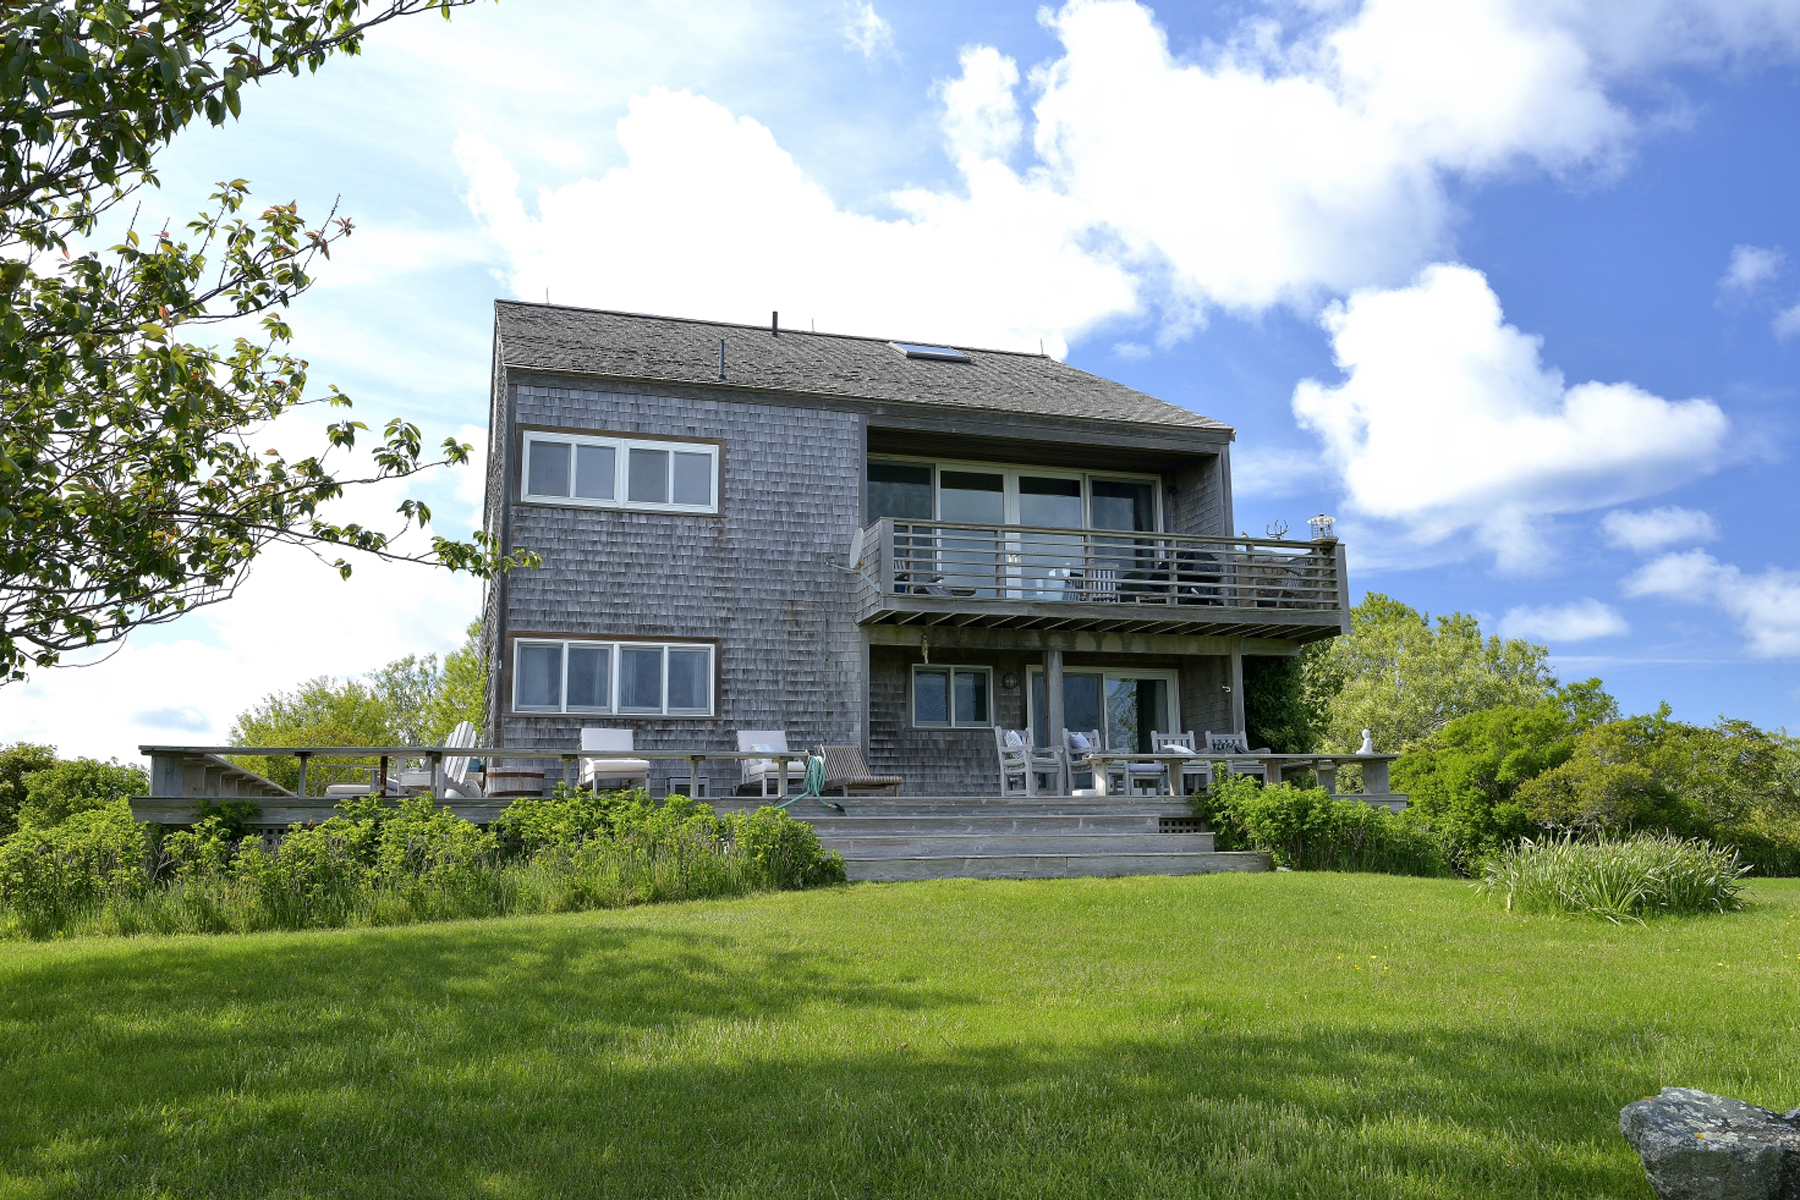 단독 가정 주택 용 매매 에 Gorgeous Unobstructed Water Views! 56 Squam Road 58 Squam Road Nantucket, 매사추세츠 02554 미국